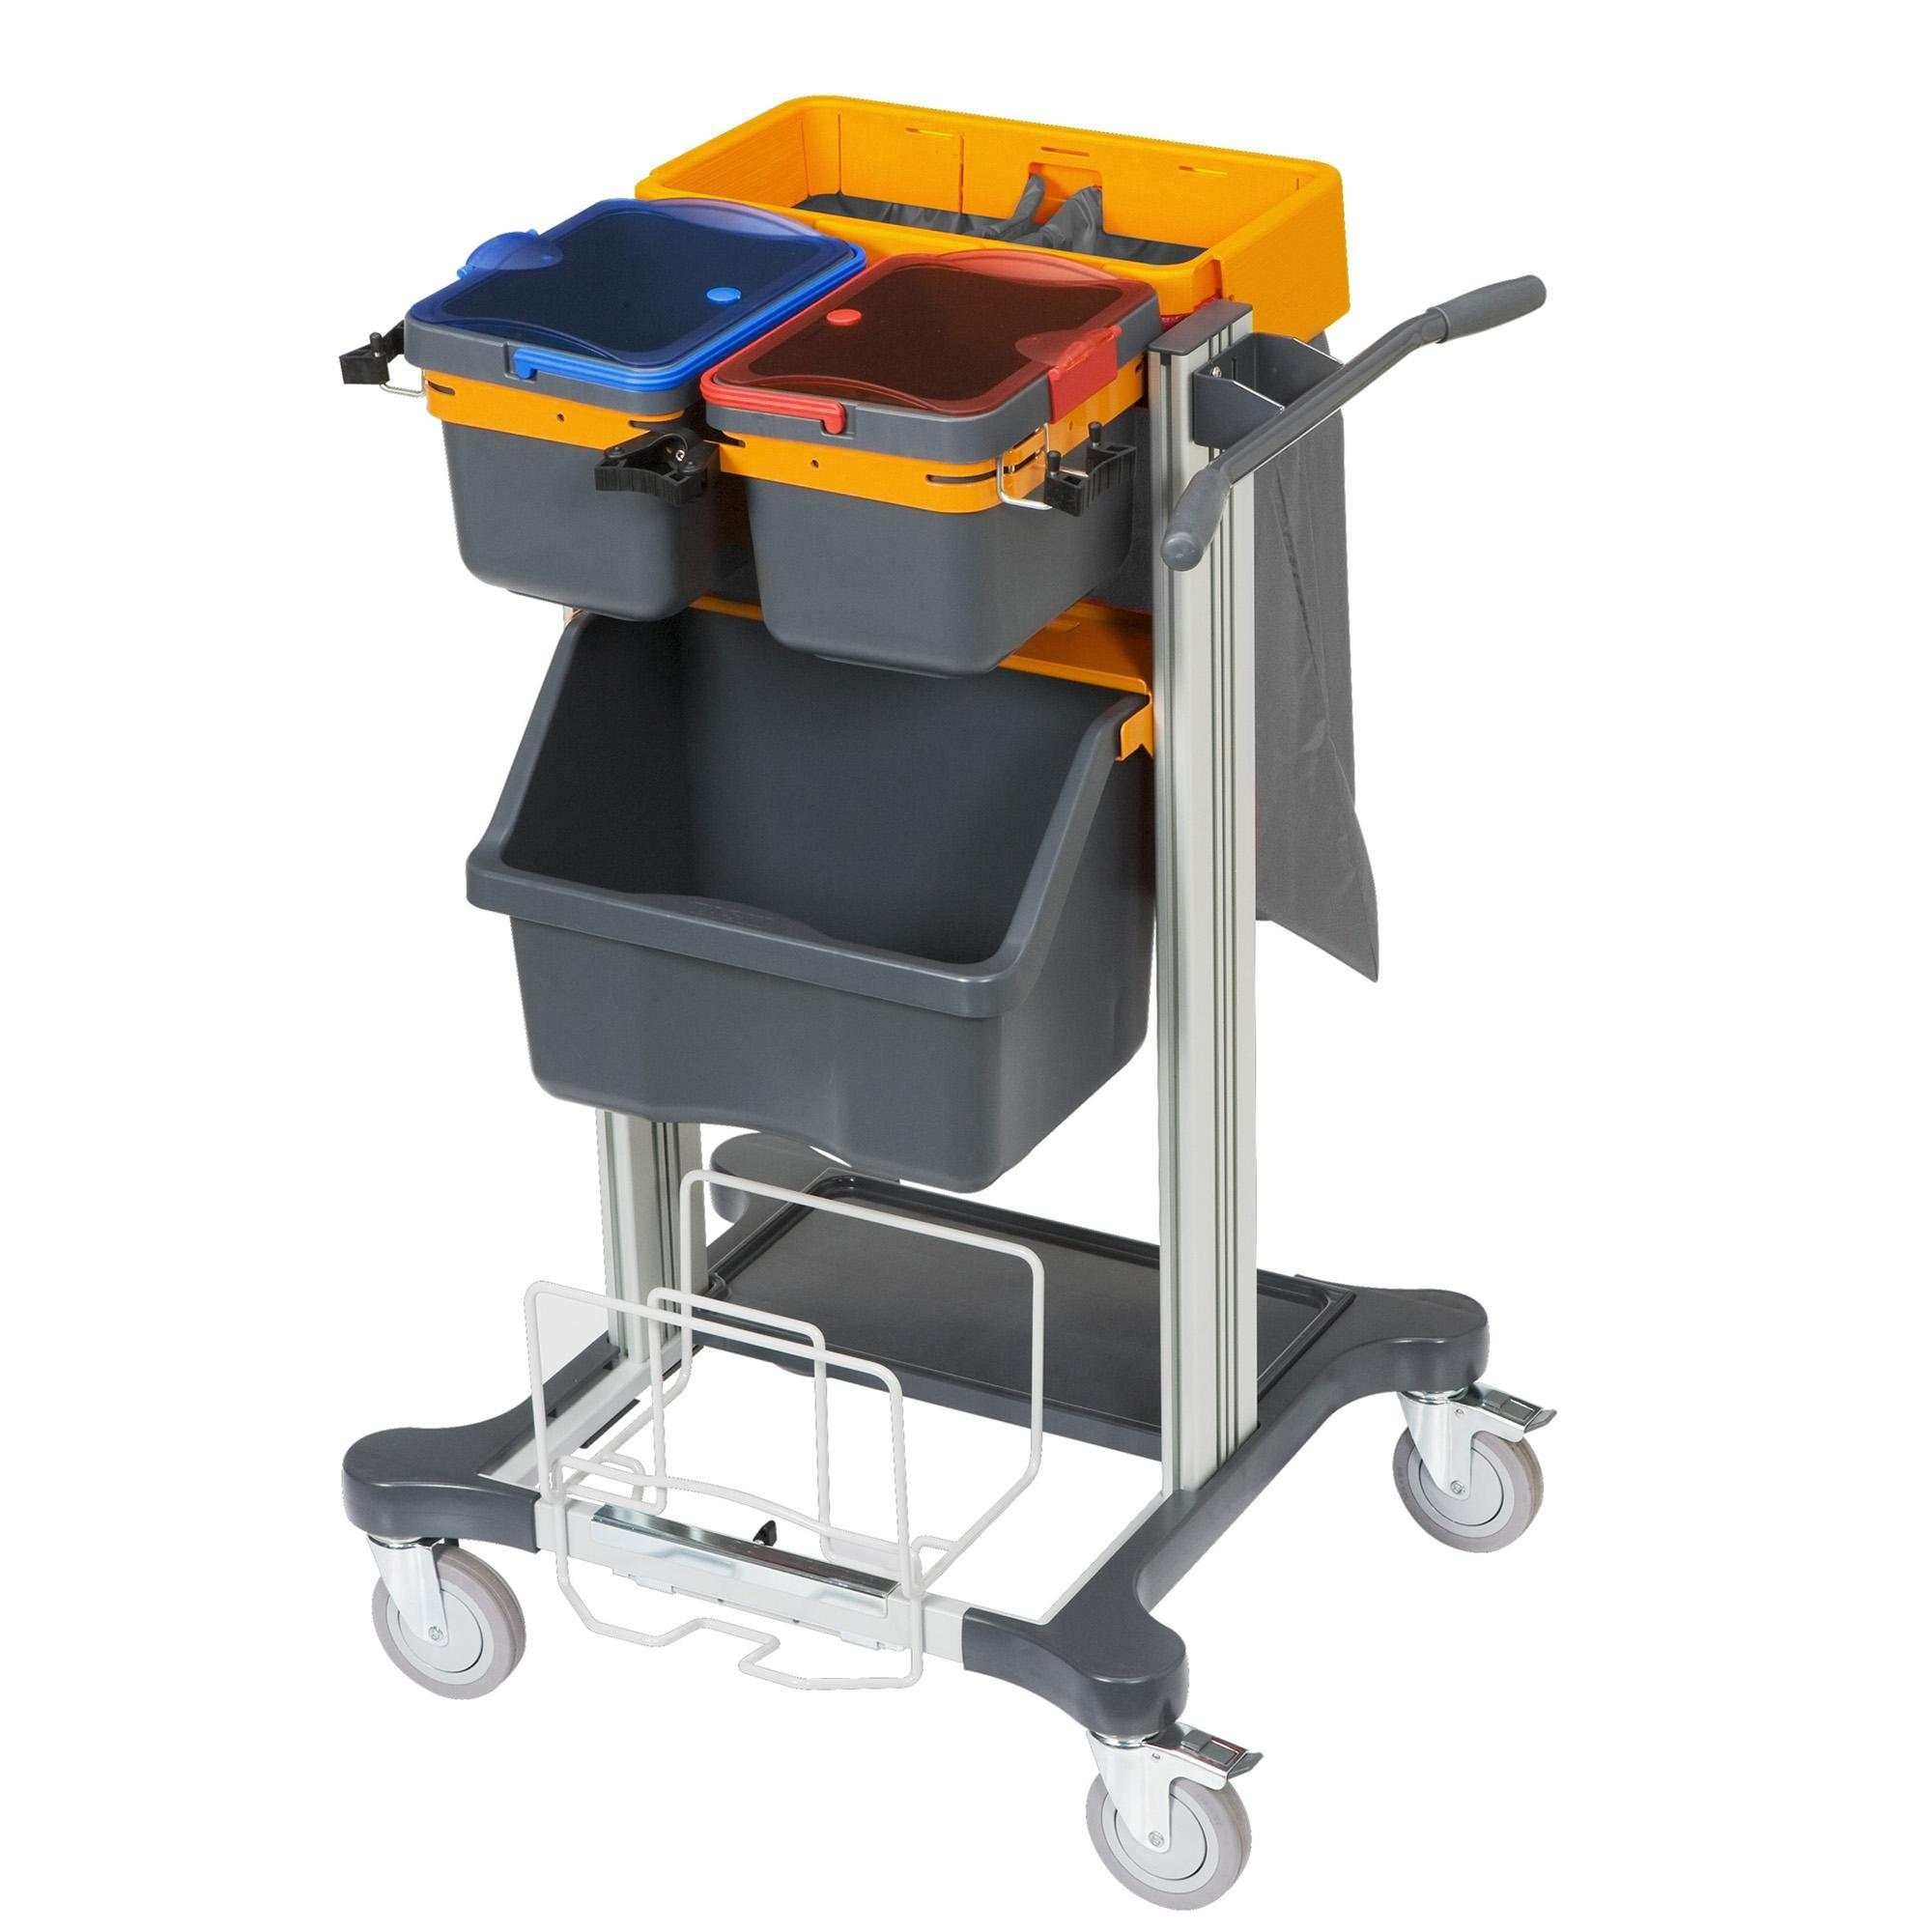 TASKI%20Mini%20Open%20trolley3_7517354%202000x2000px.jpg